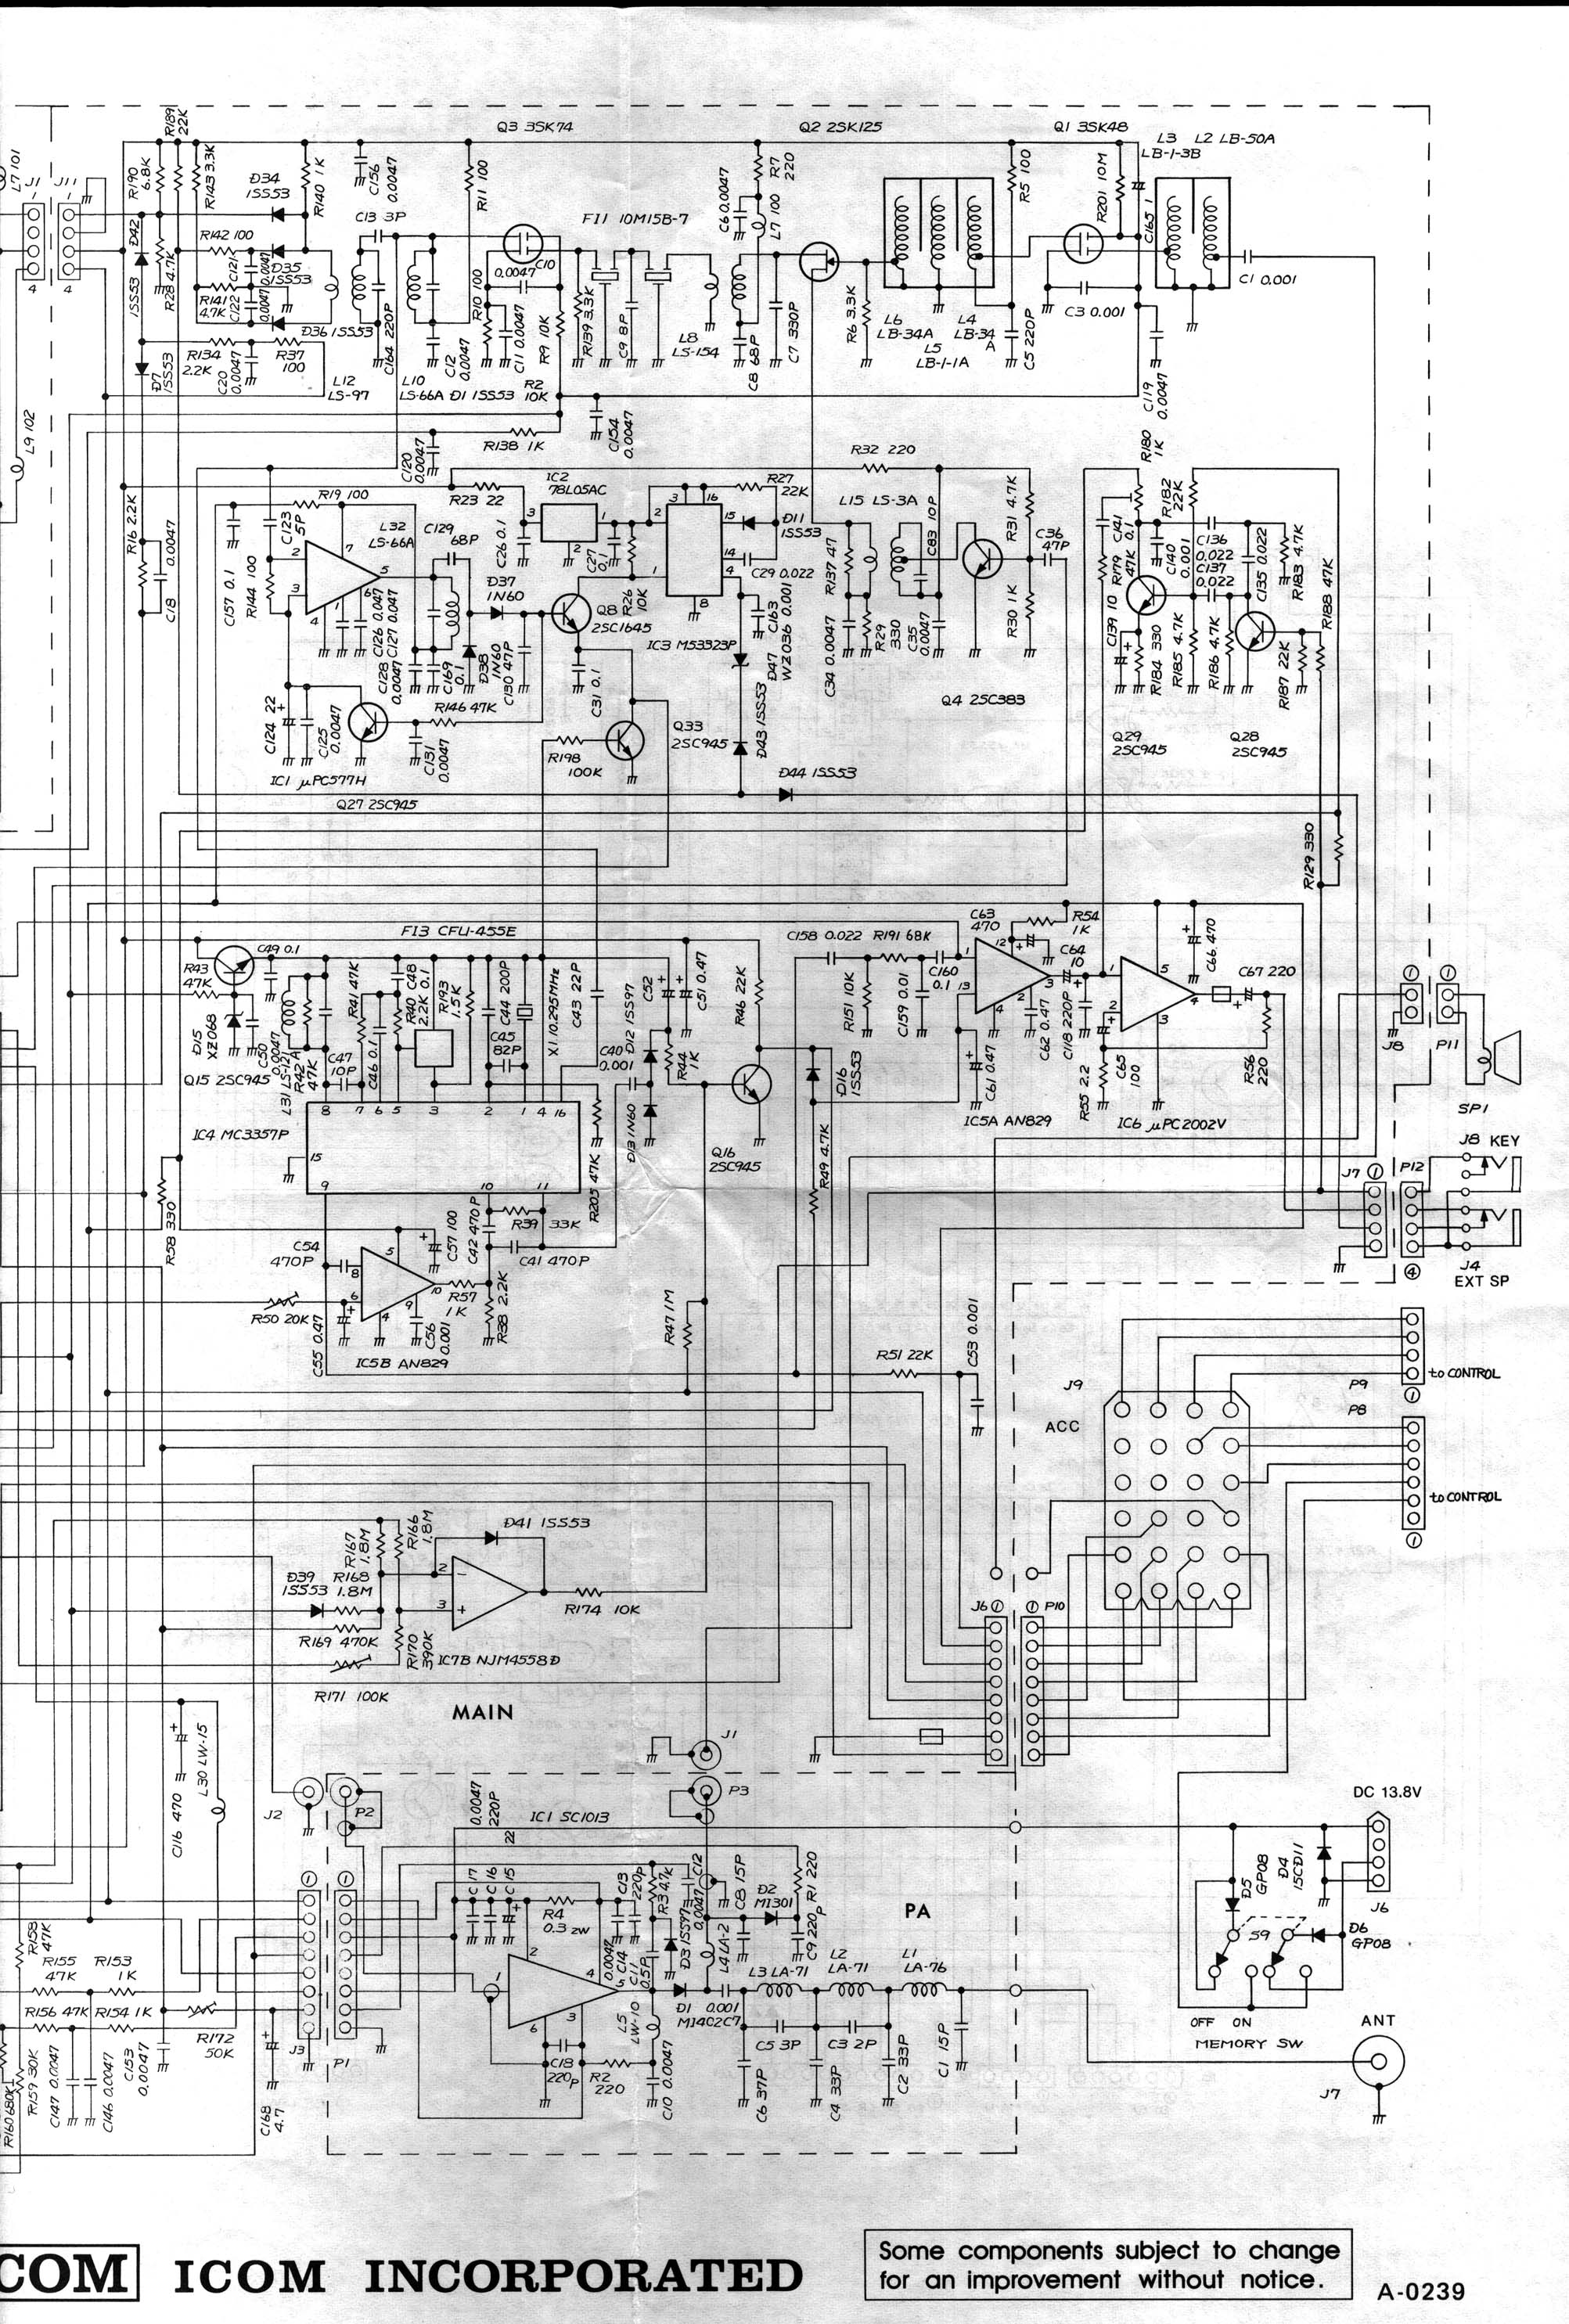 Icom Battery Pack Wiring Diagram E 34 Images Subaru Ea81 1 Ic 260a Schematics And Parts Layout Basic 12 Volt Diagrams At Cita